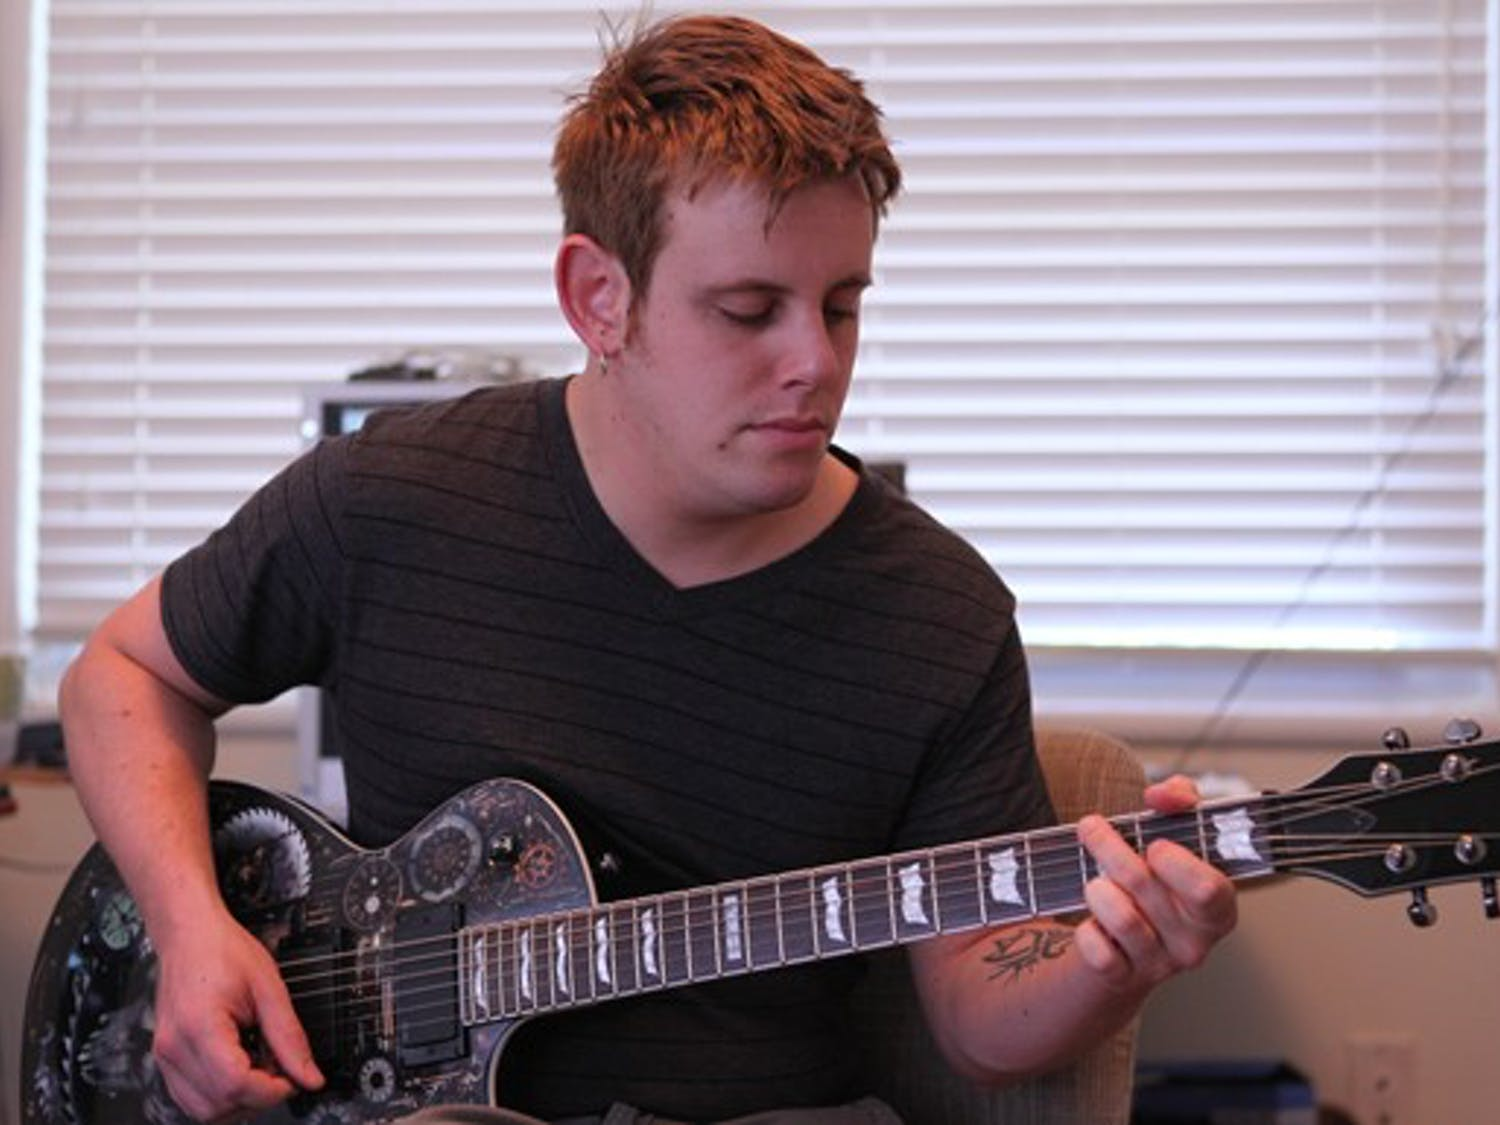 James Carlson practices on his newest guitar. DTH/Stephen Mitchell